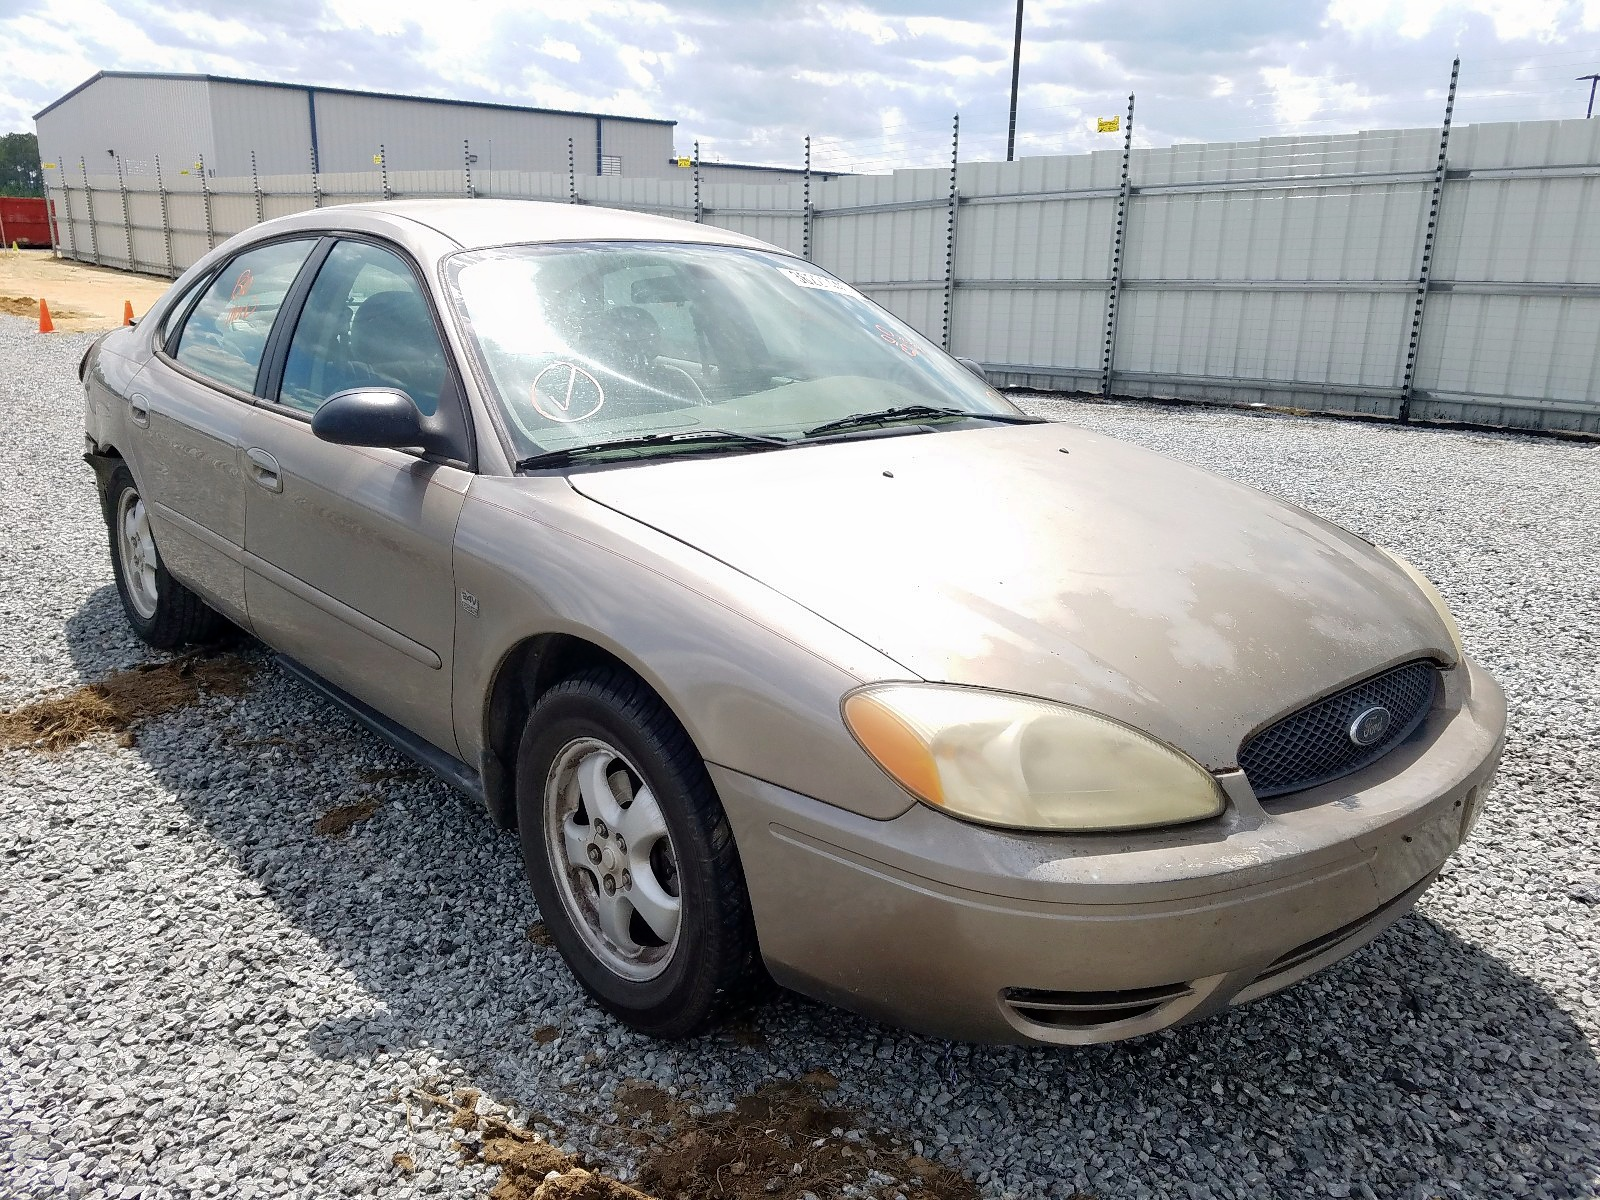 2004 ford taurus ses for sale at copart lumberton nc lot 36221440 salvagereseller com salvagereseller com